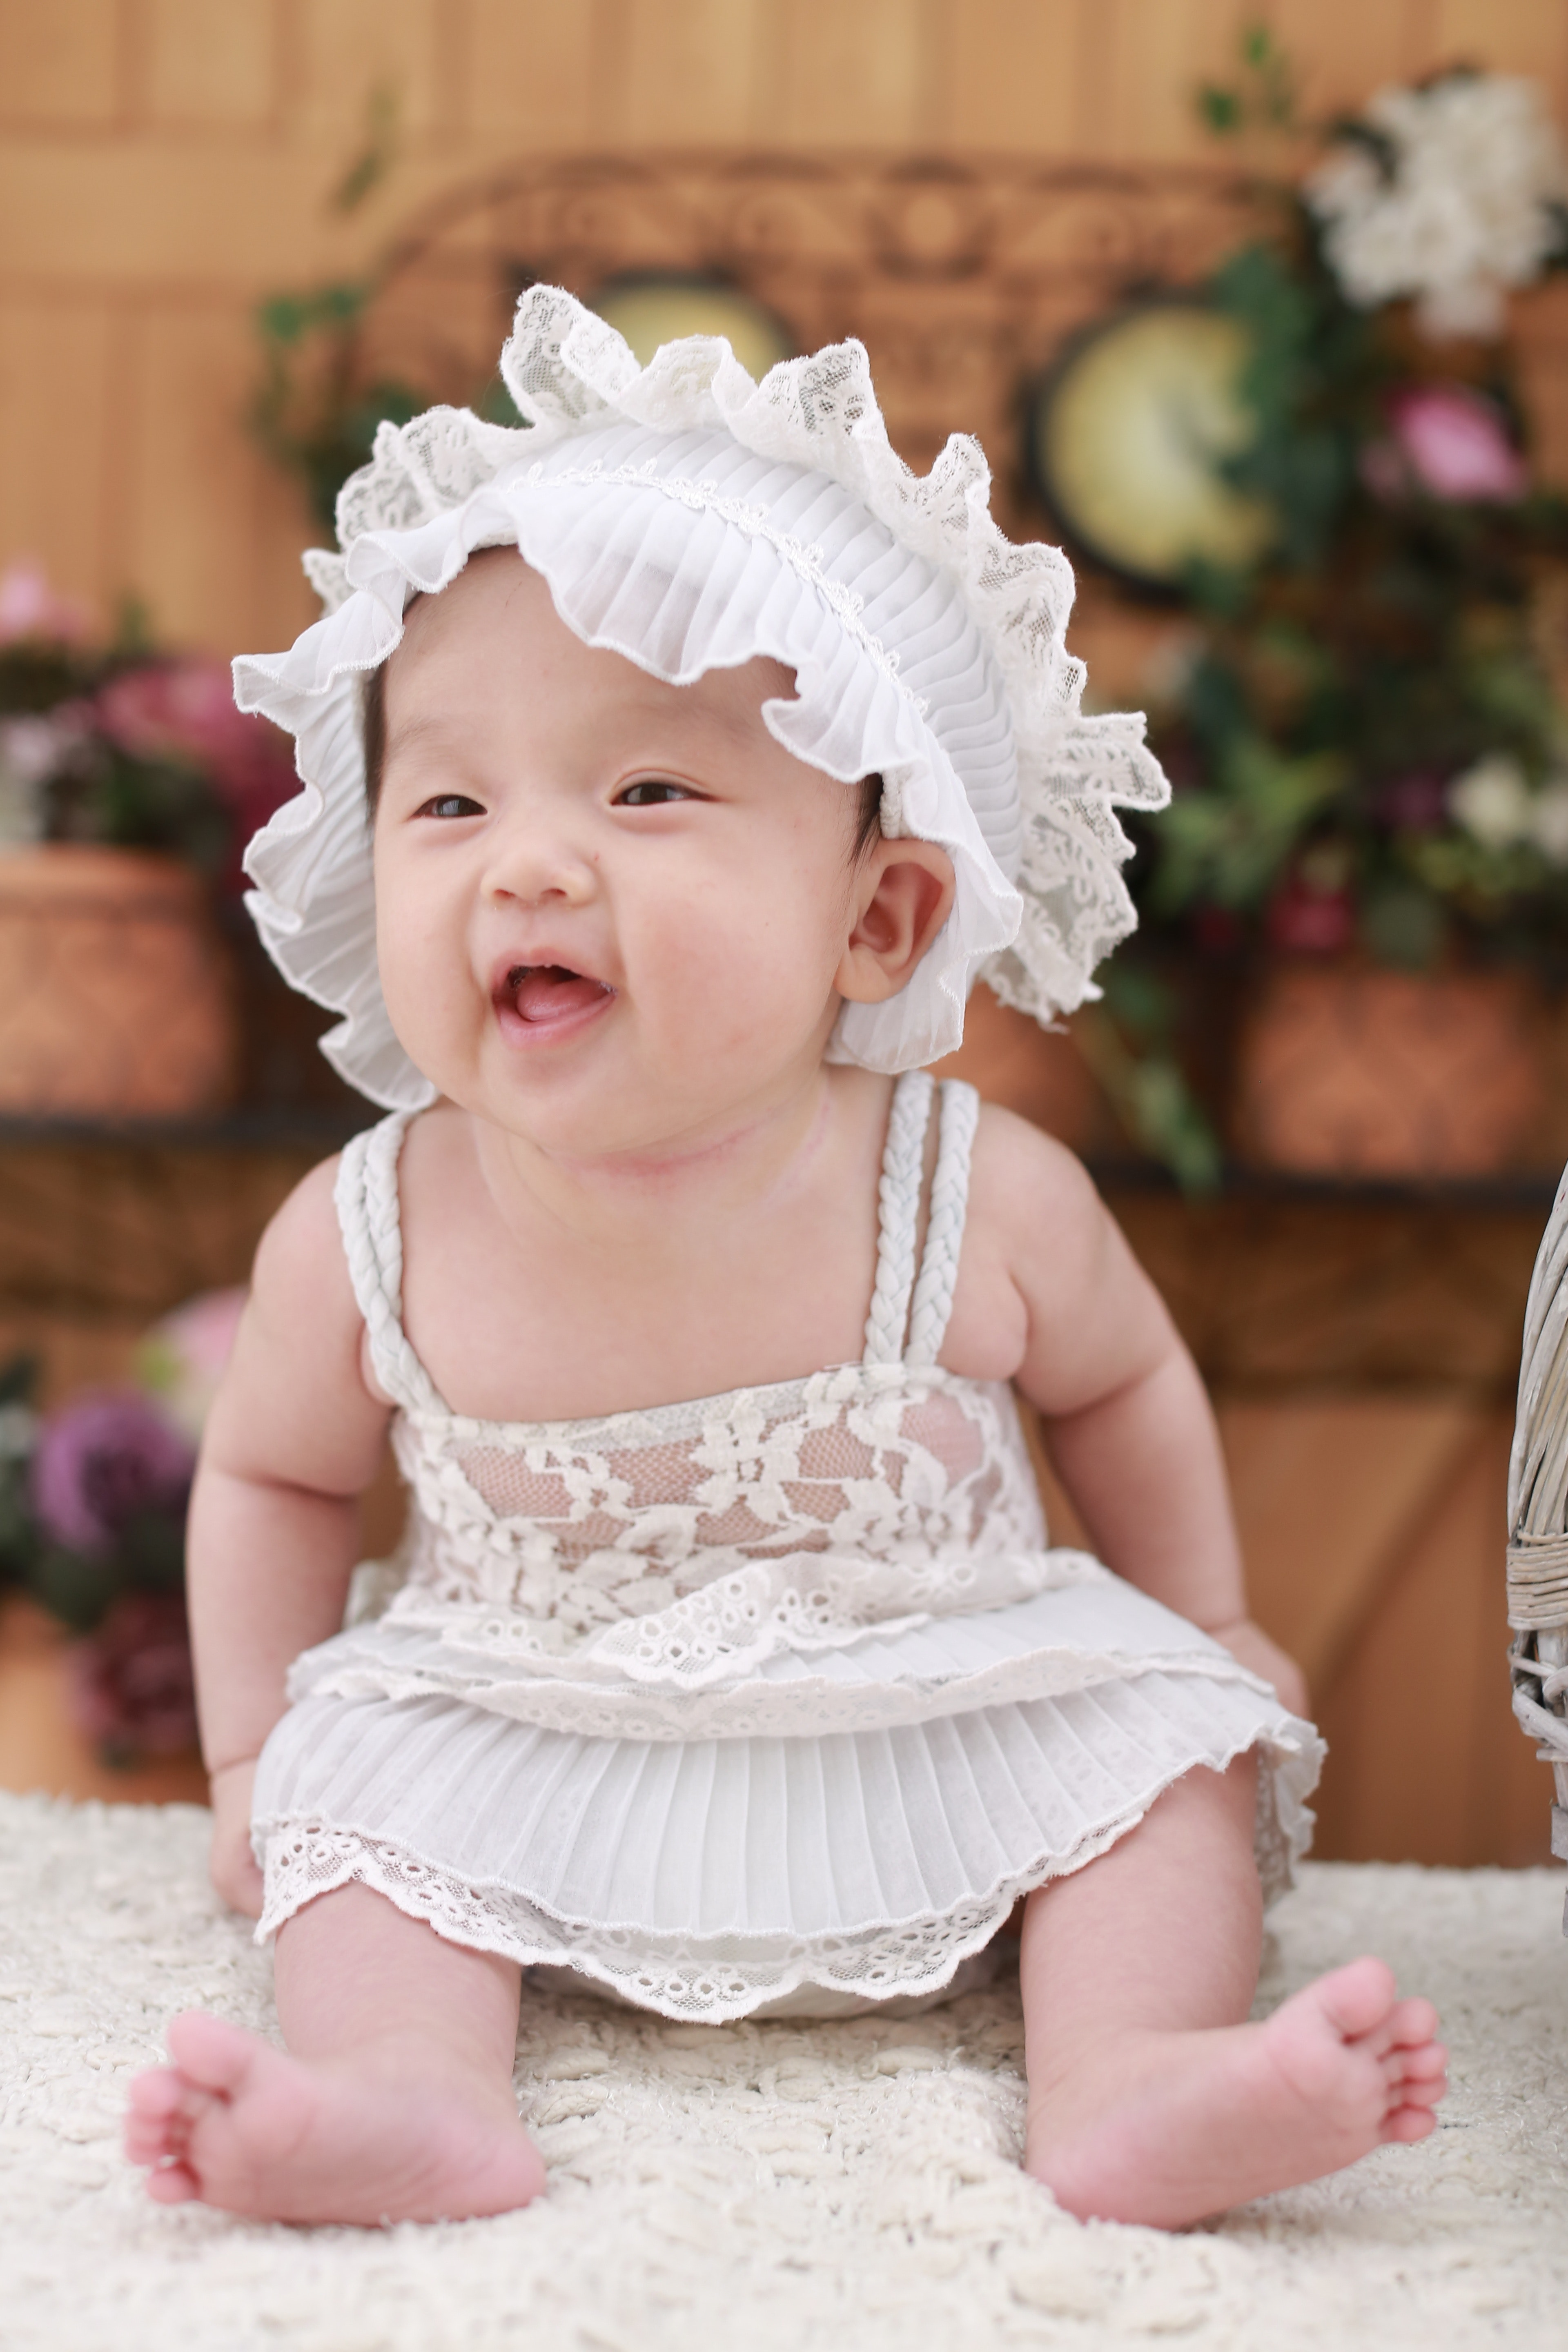 Baby in White Dress With White Headdress · Free Stock Photo